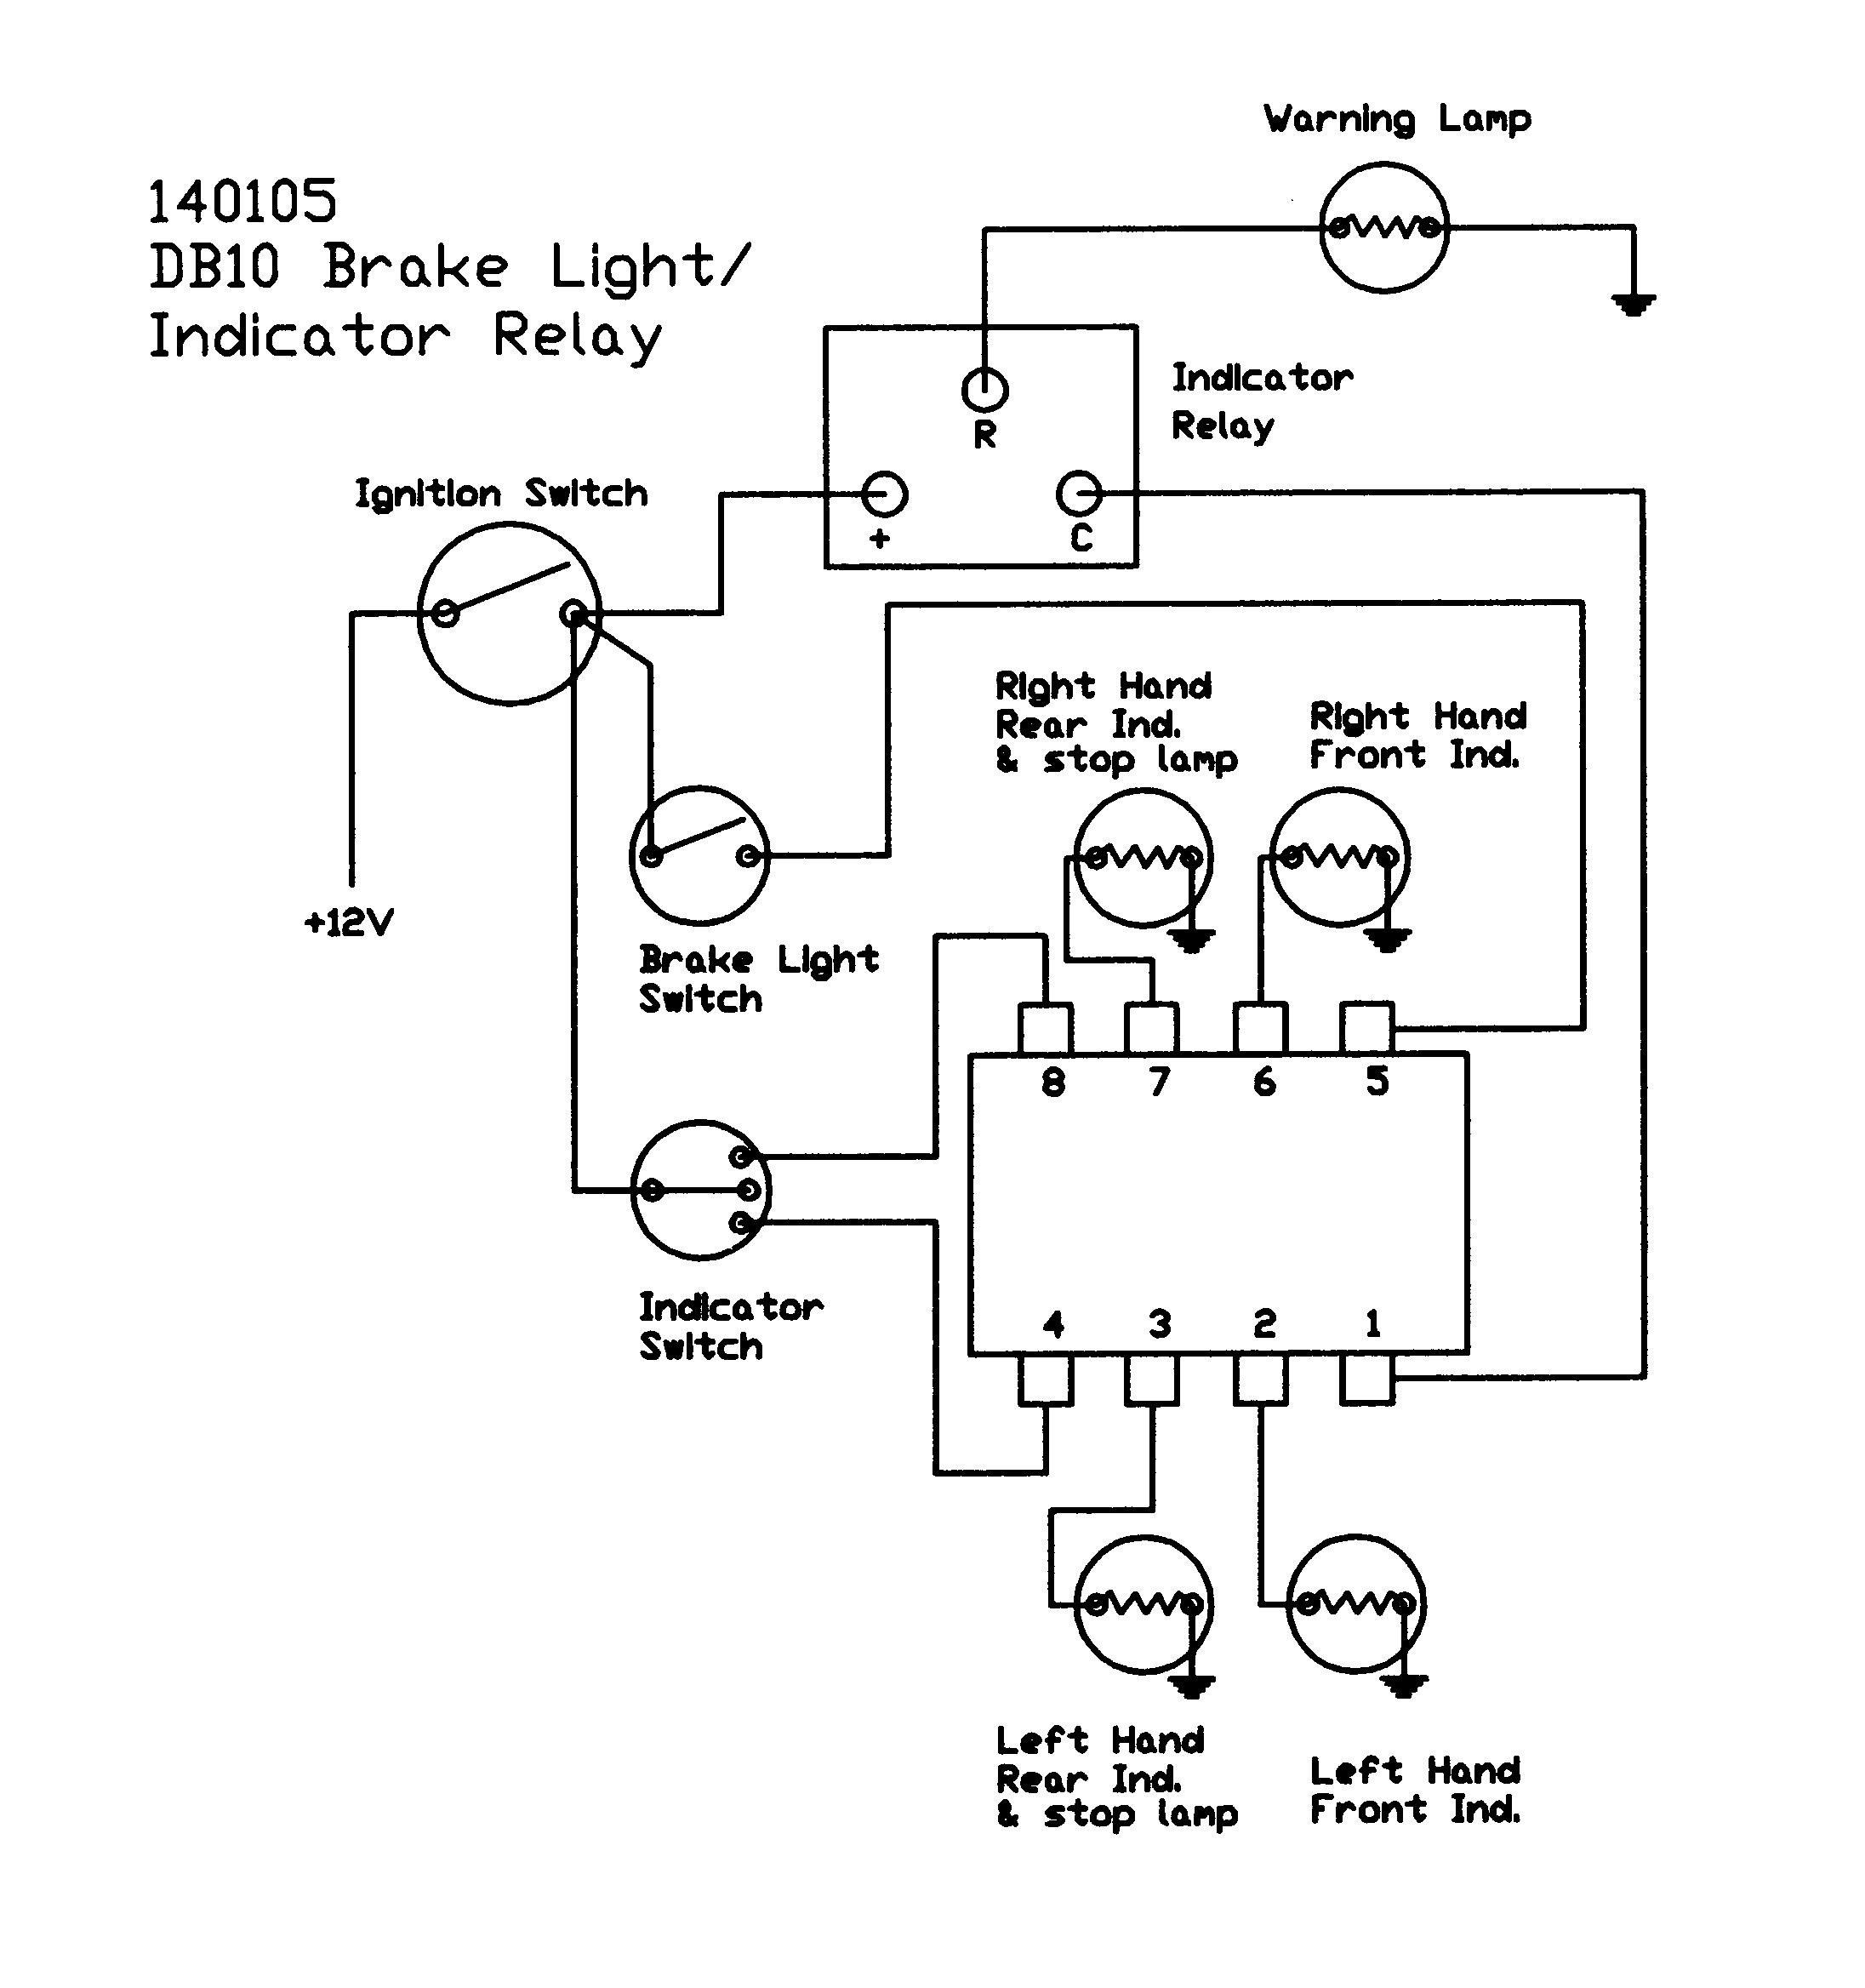 Colorful msd ignition 62152 wiring diagram image collection free electrical drawing at getdrawings free for personal use